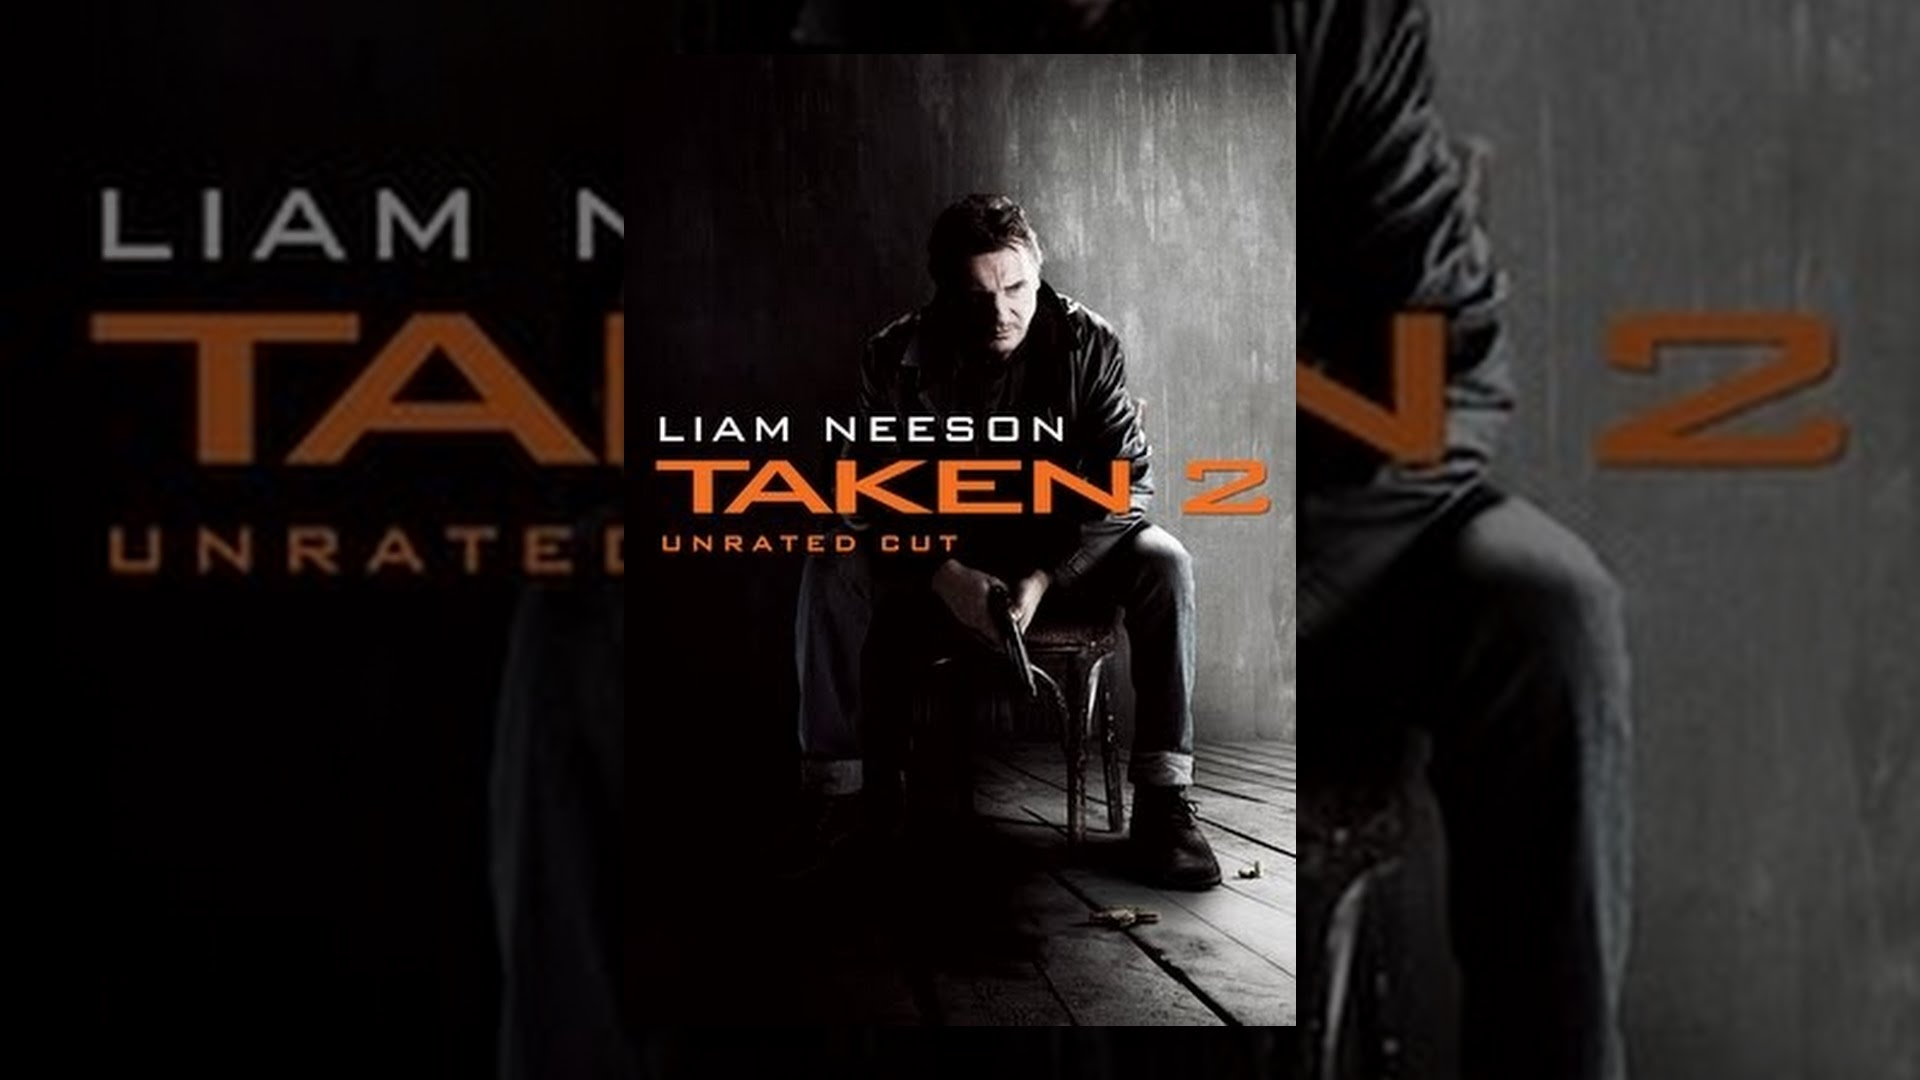 Download Taken 2 (Unrated Cut)